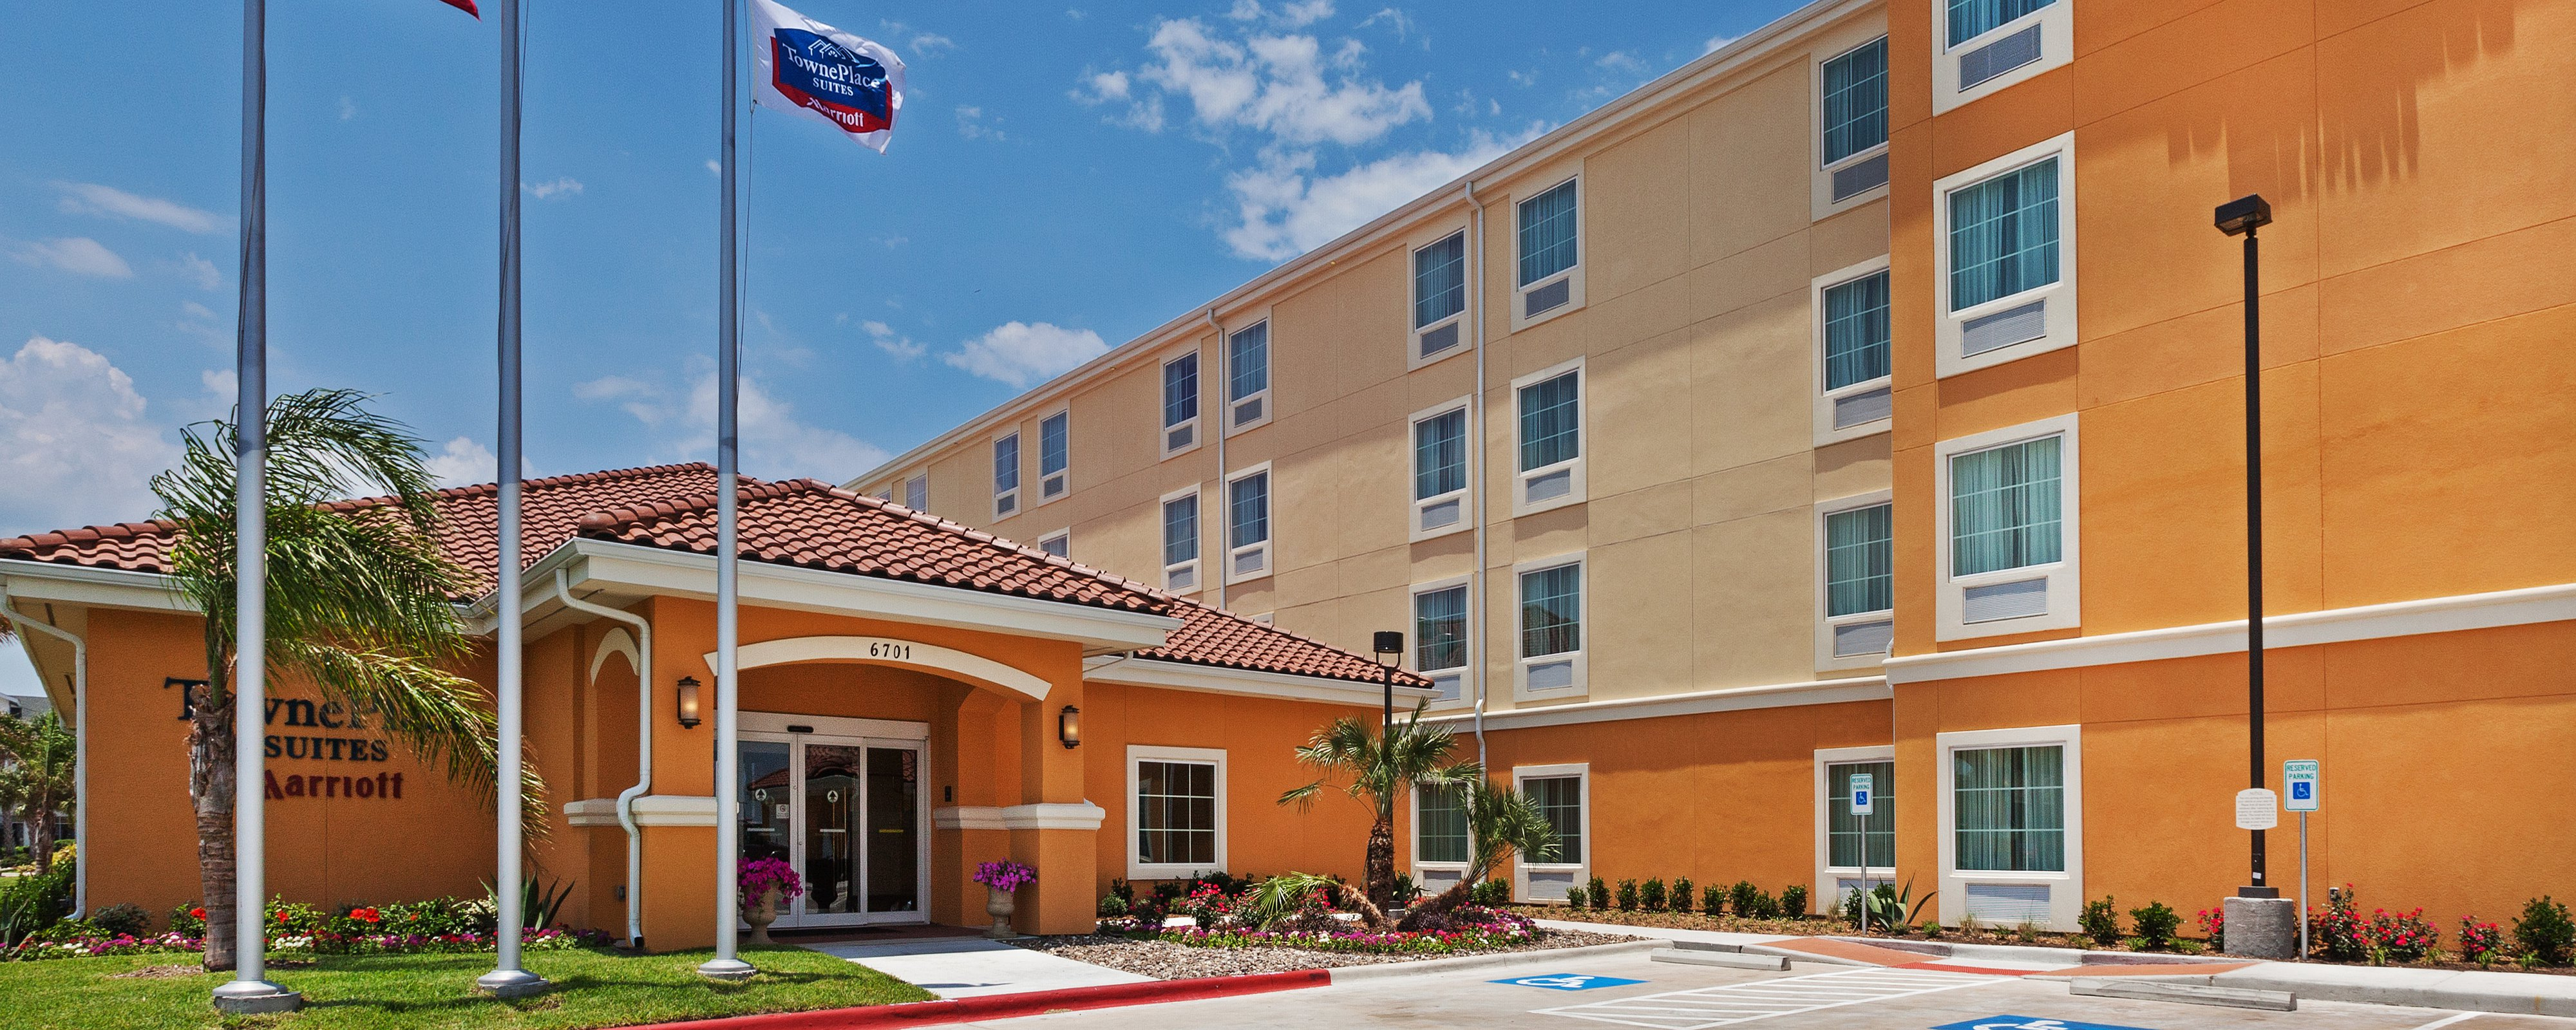 Extended Stay Corpus Christi Hotels | Towneplace Suites Corpus Christi - Map Of Hotels In Corpus Christi Texas